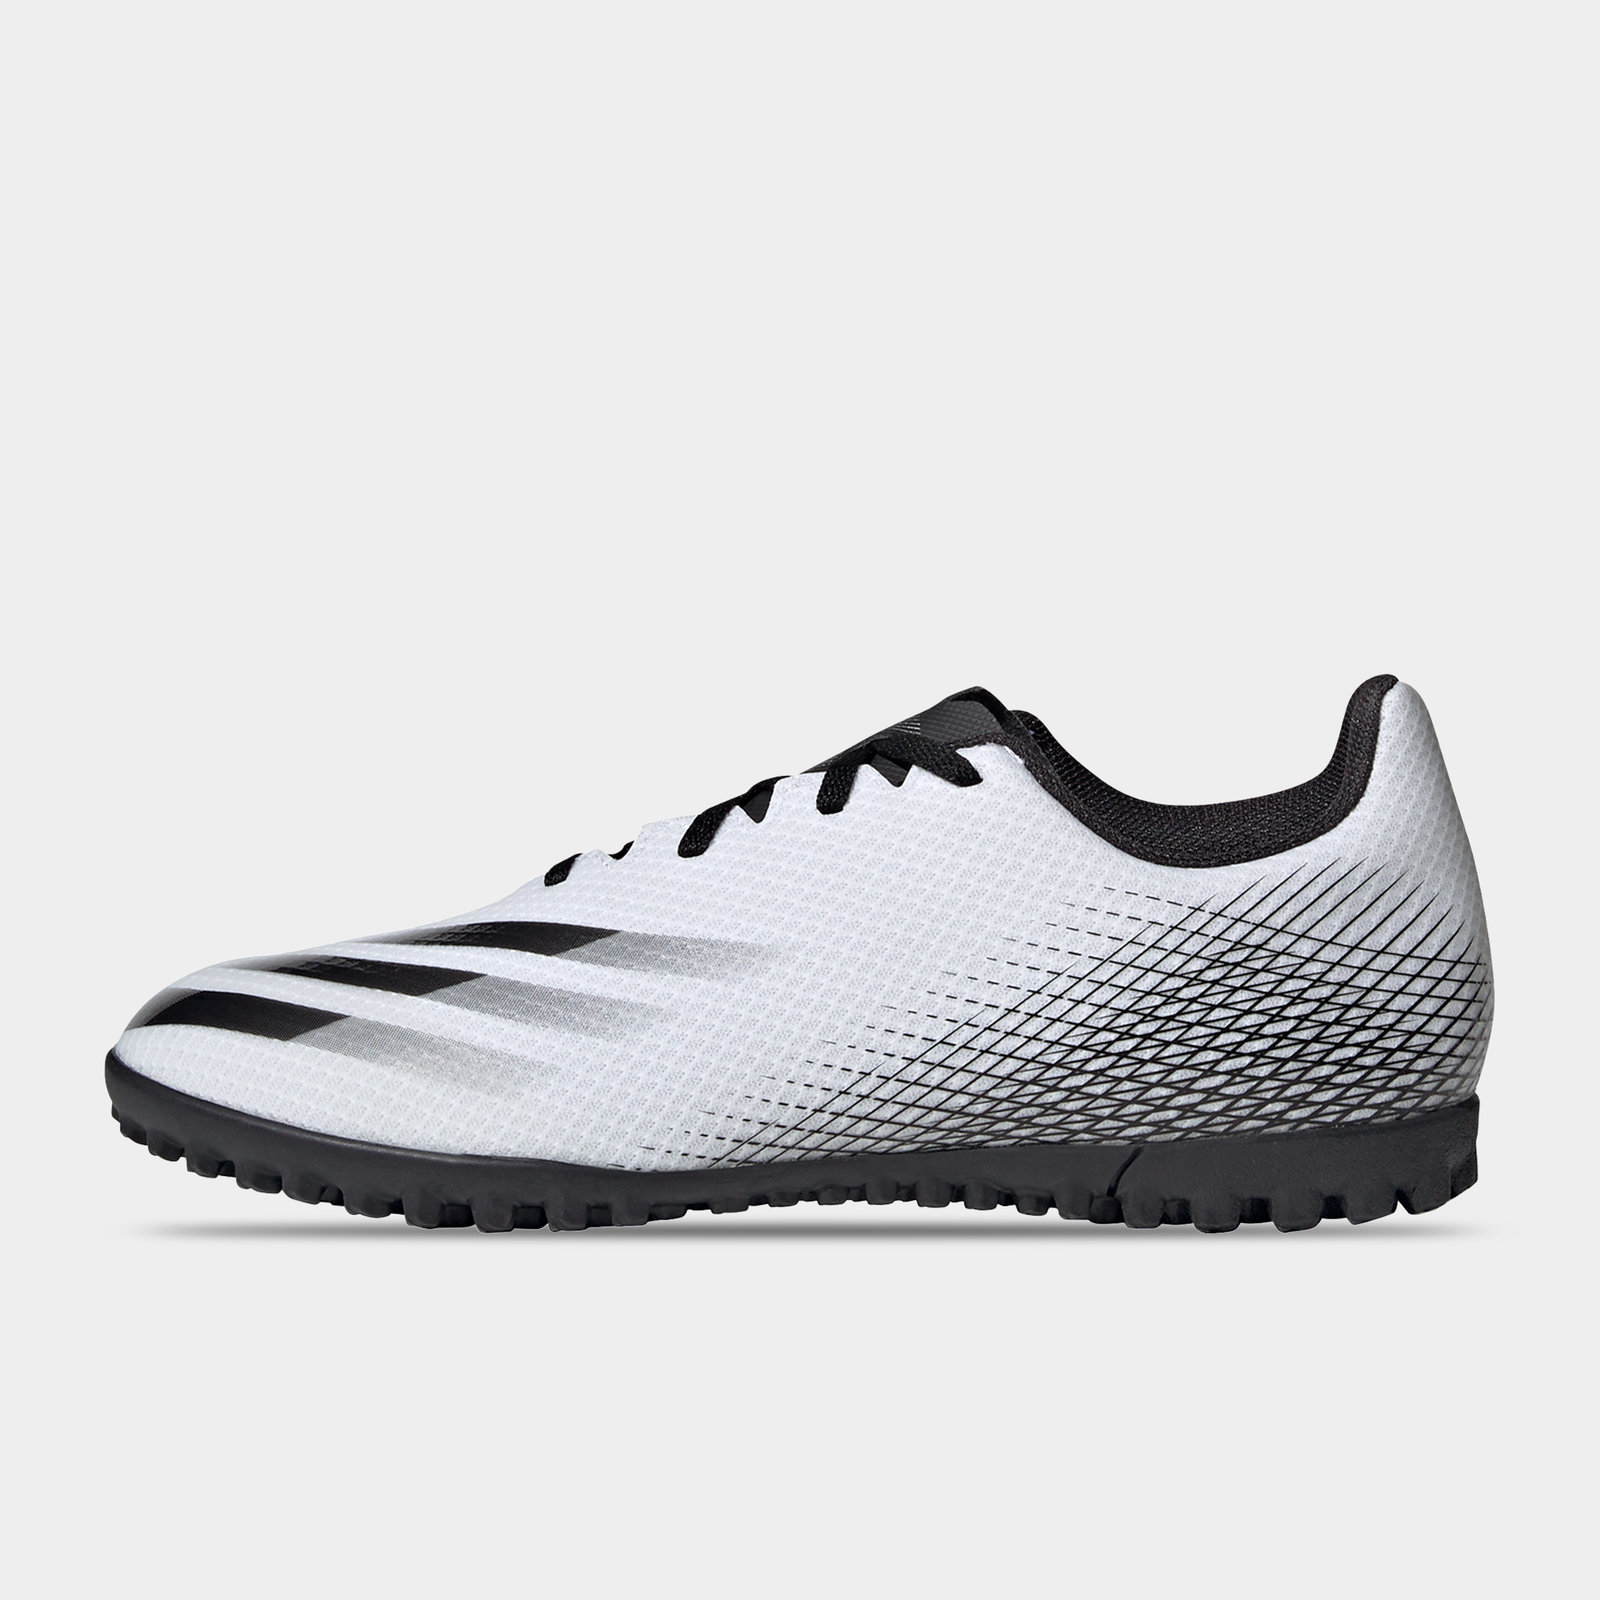 X Ghosted .4 Astro Turf Trainers